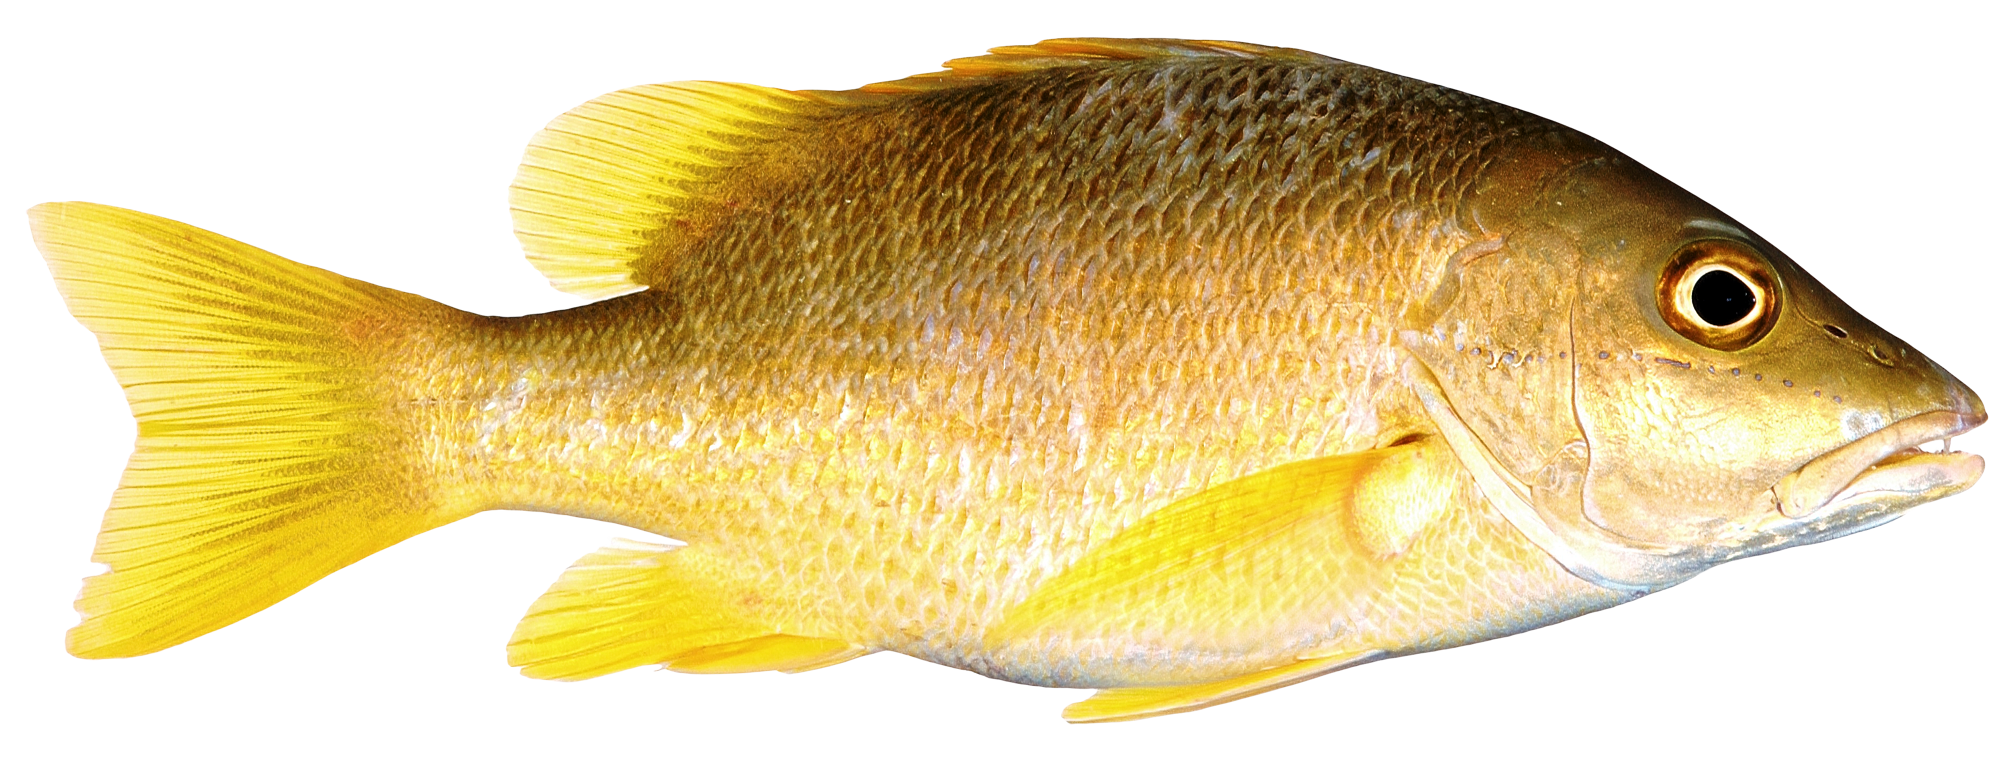 Fish PNG Transparent Image - Fish PNG